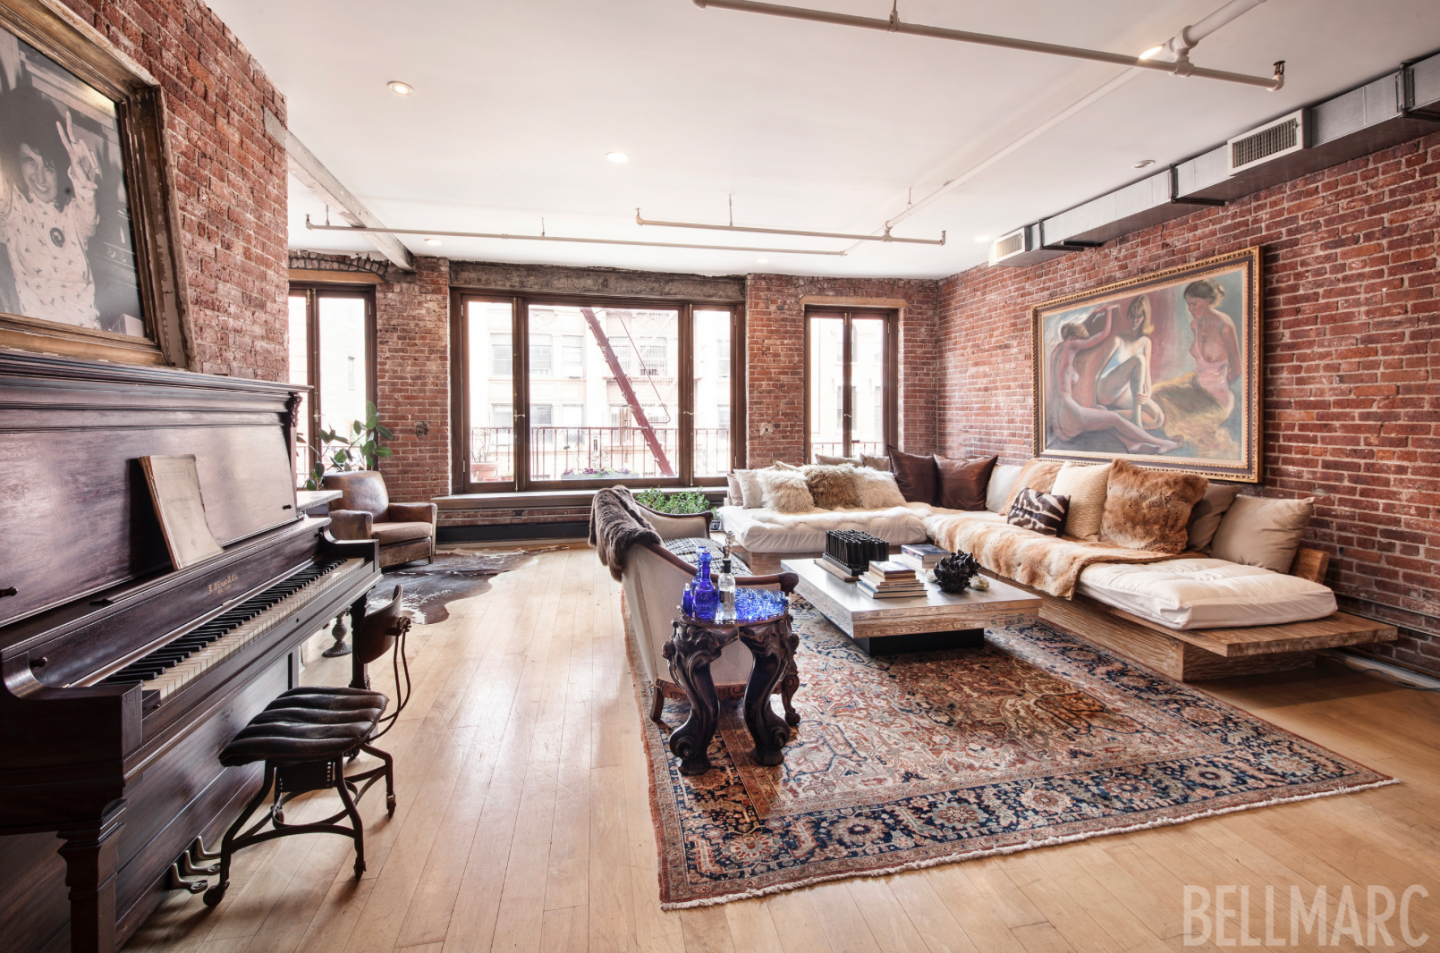 Singer-songwriter Vanessa Carlton's has been out of the limelight for years and now she is out of her SoHo loft which is for rent for $17,500 per month.